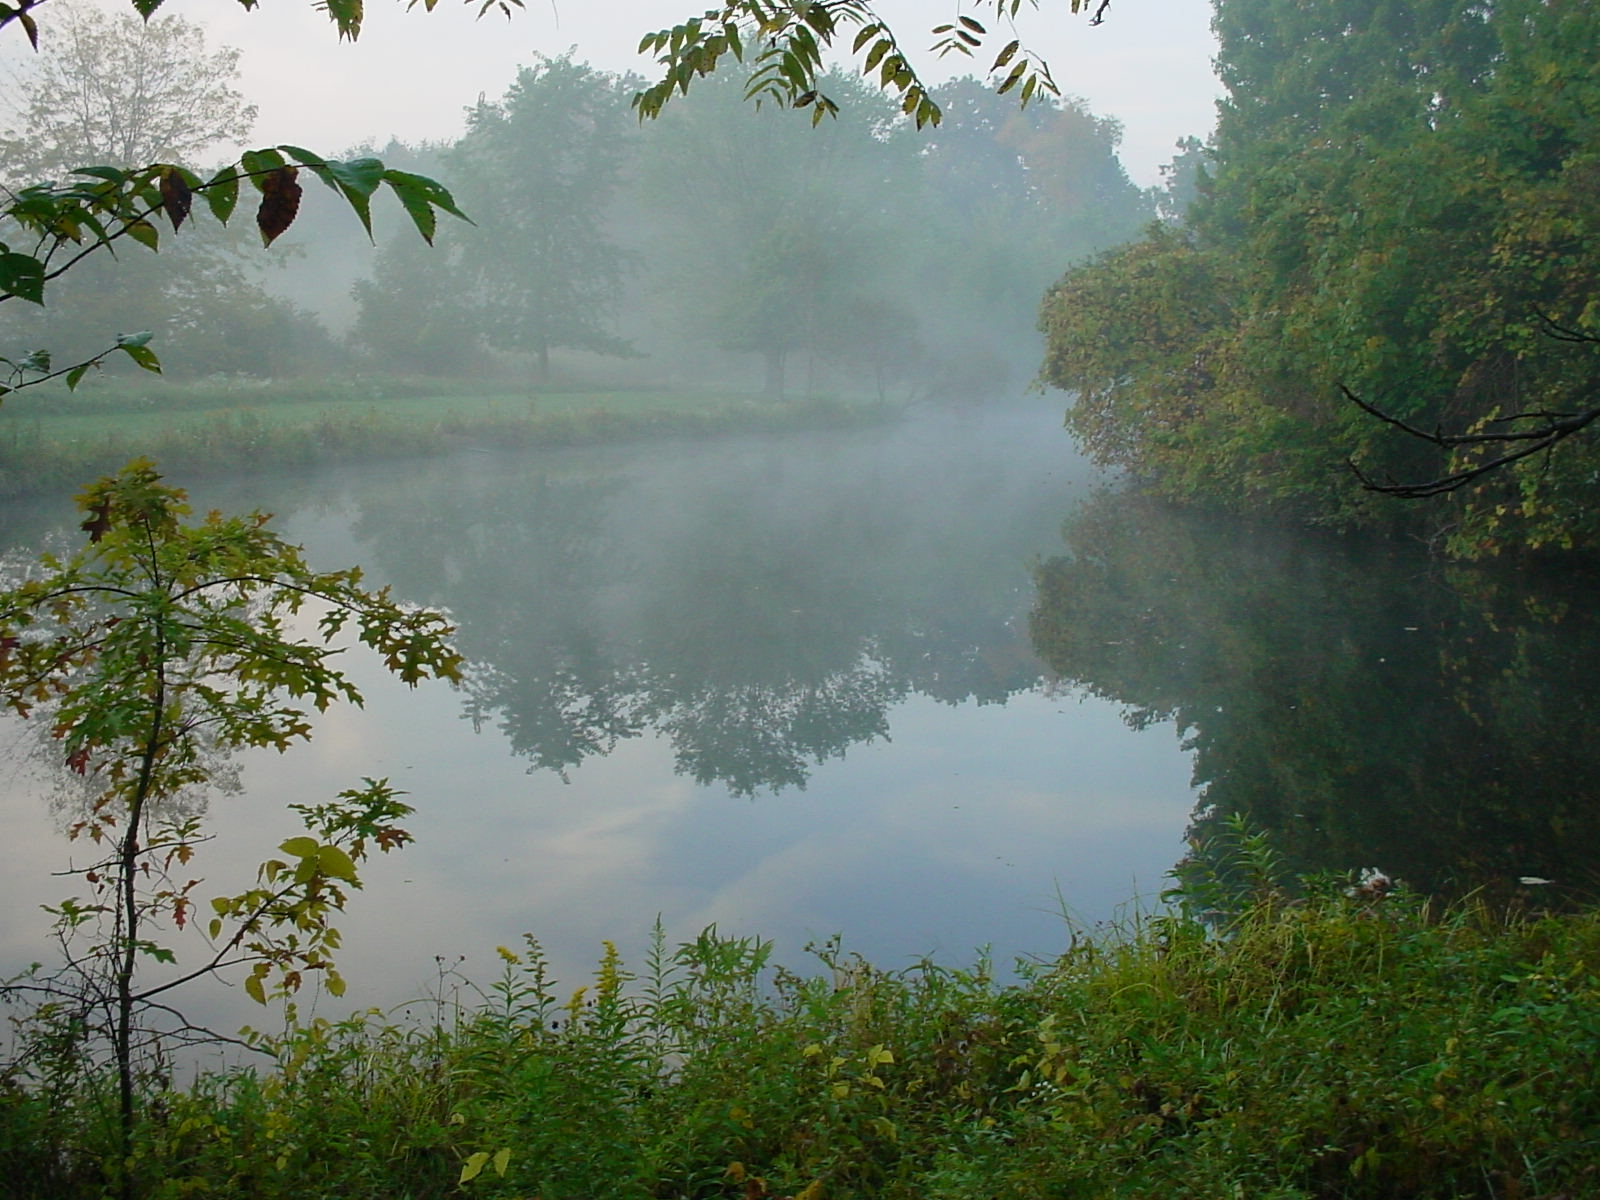 images/featured project images/CHCAA - Morning Fog on North Lake.jpg